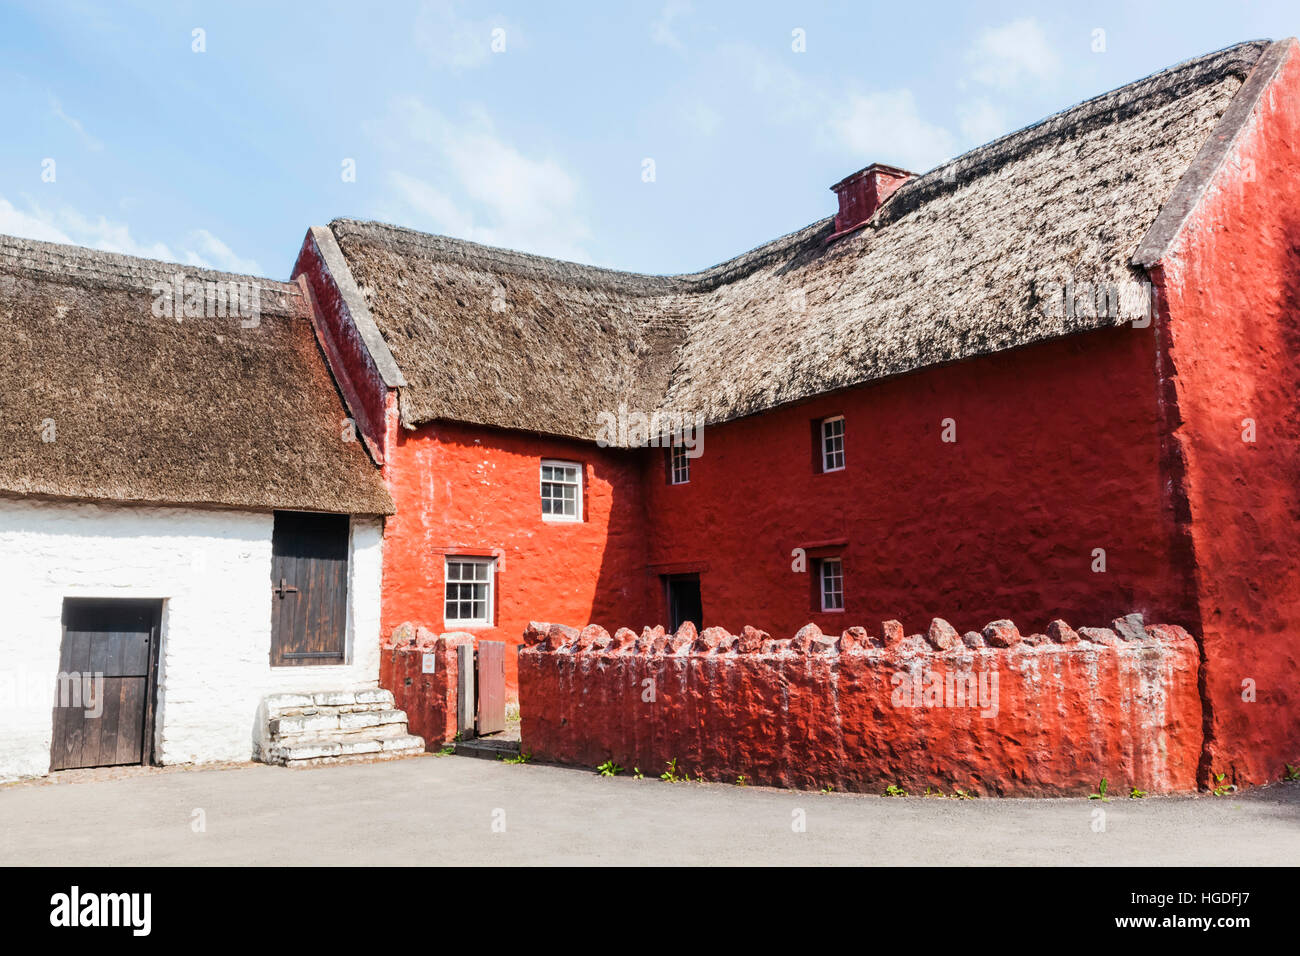 Wales, Cardiff, St Fagan's, Museum of Welsh Life, Historic Village House - Stock Image